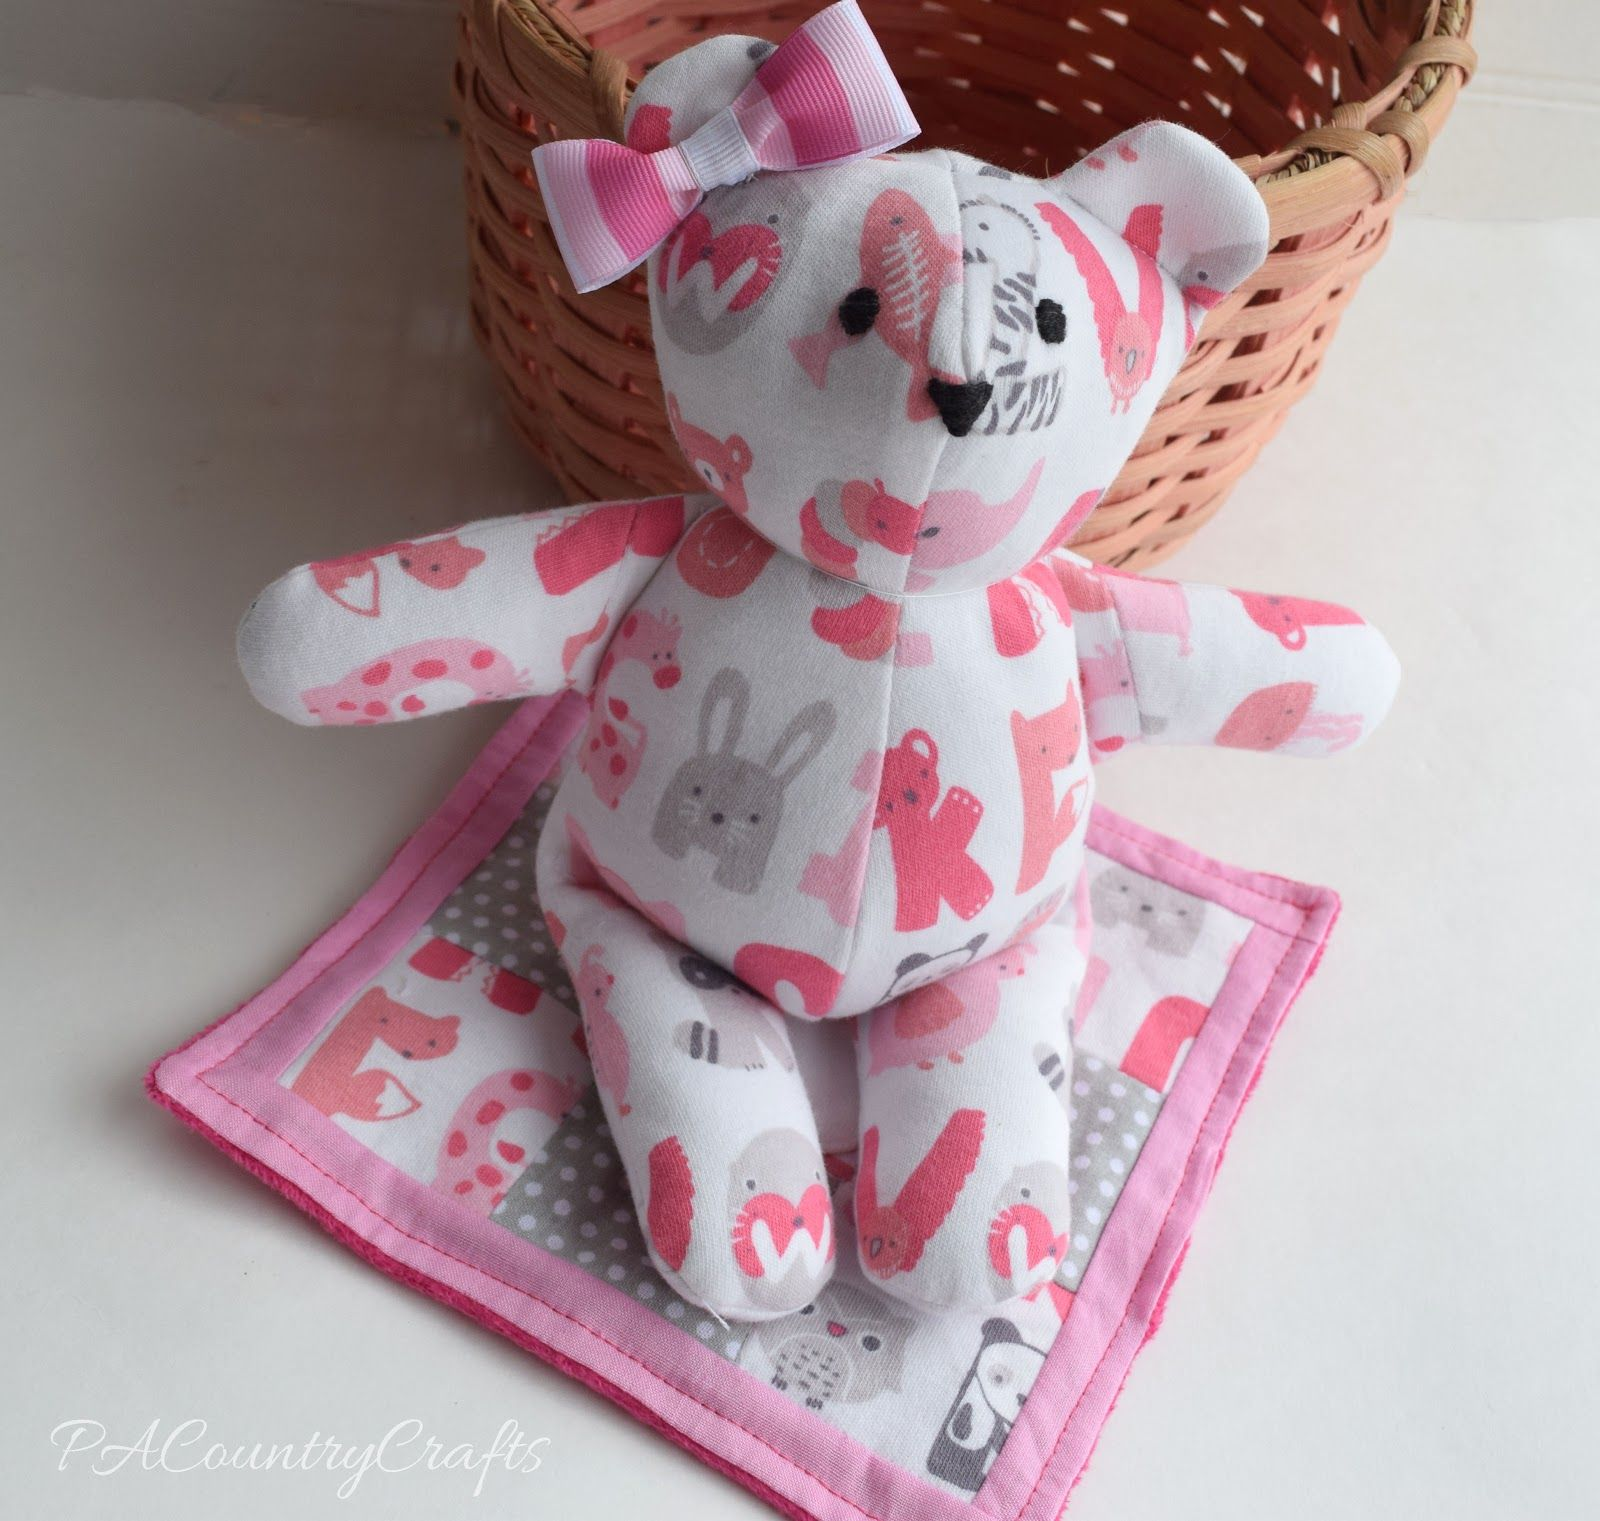 Pacountrycrafts Baby Clothes Memory Bear Pattern And Tutorial